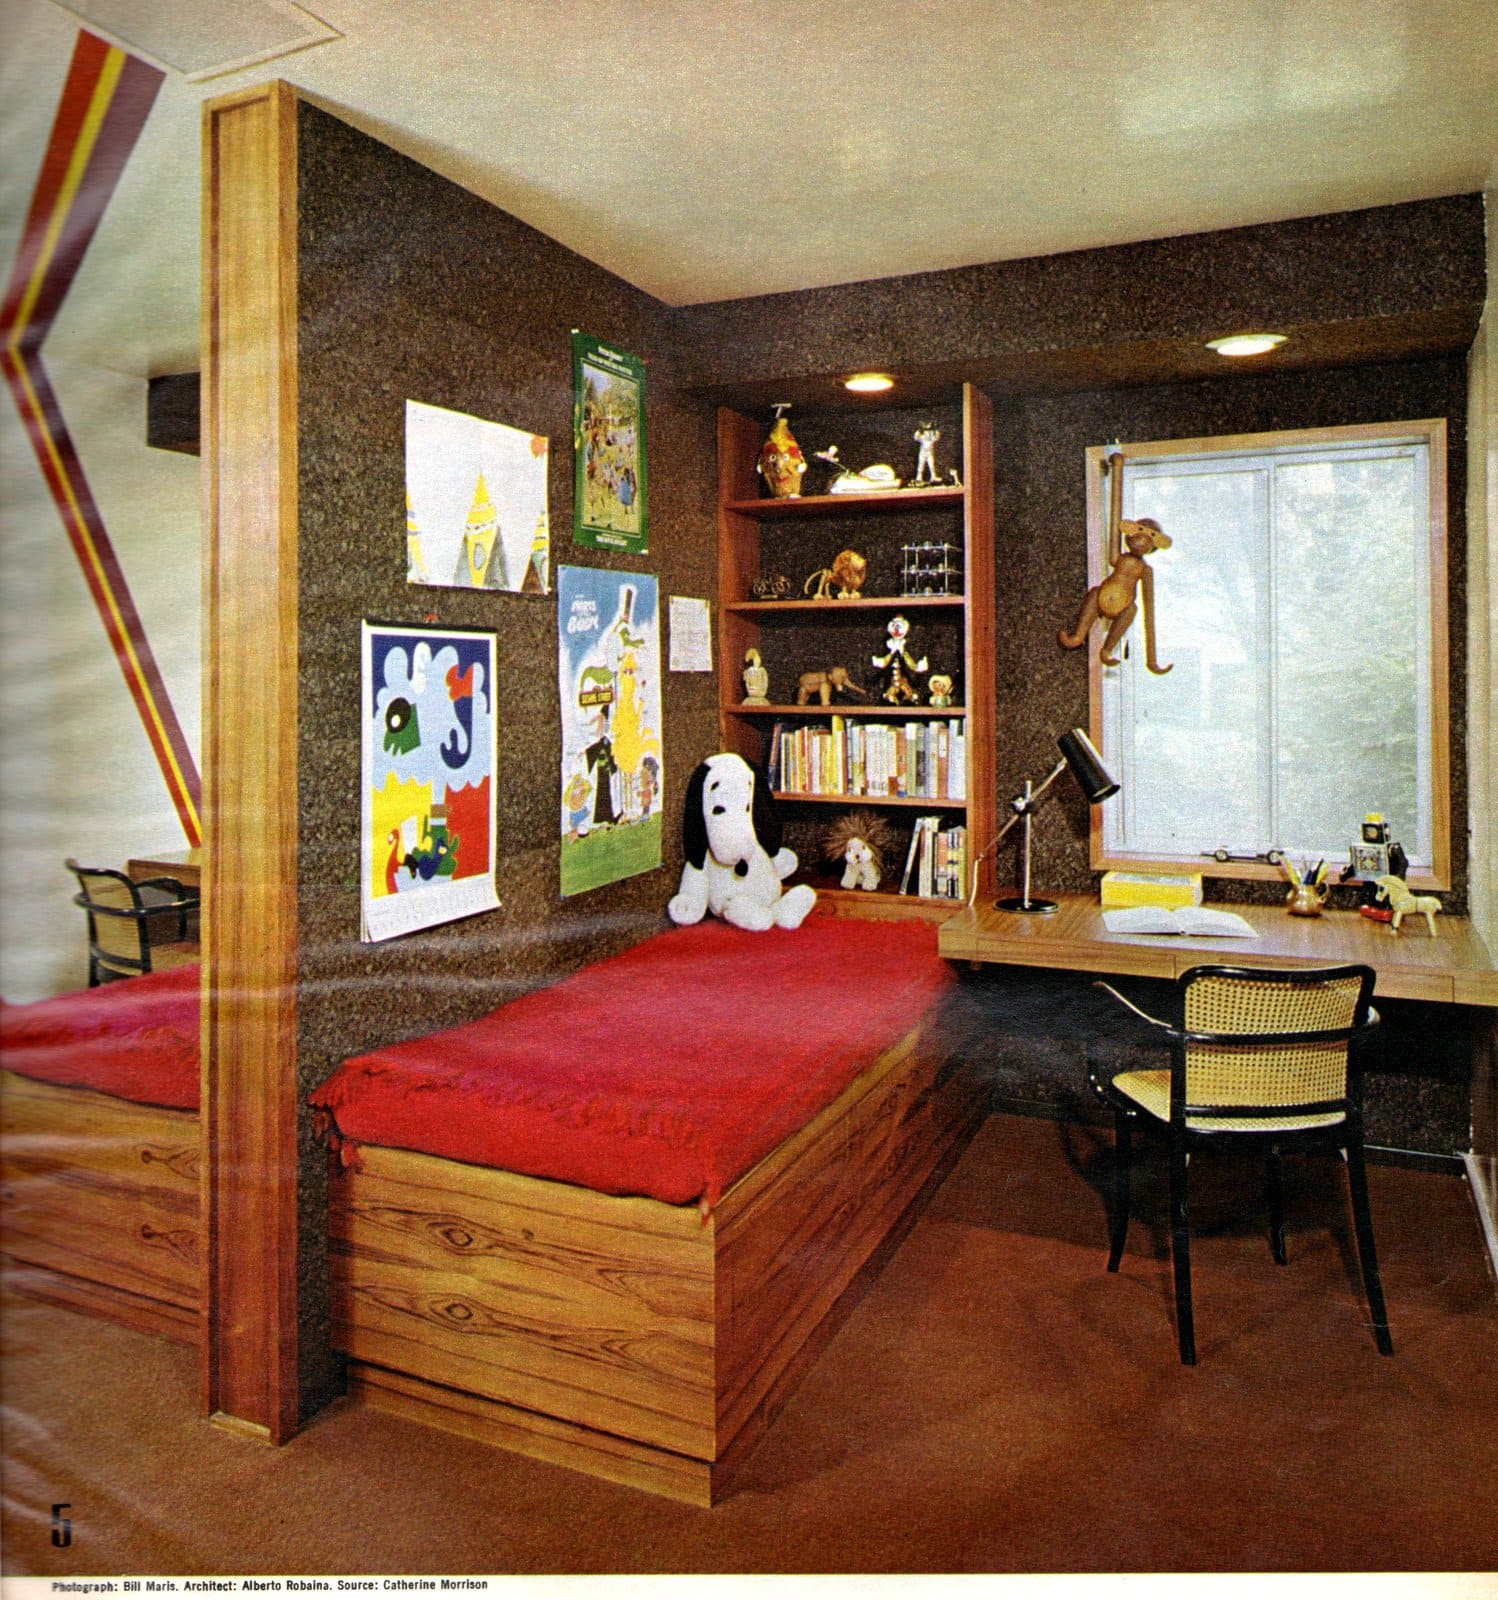 Creative bedroom decor ideas for kids from 1972 (2)